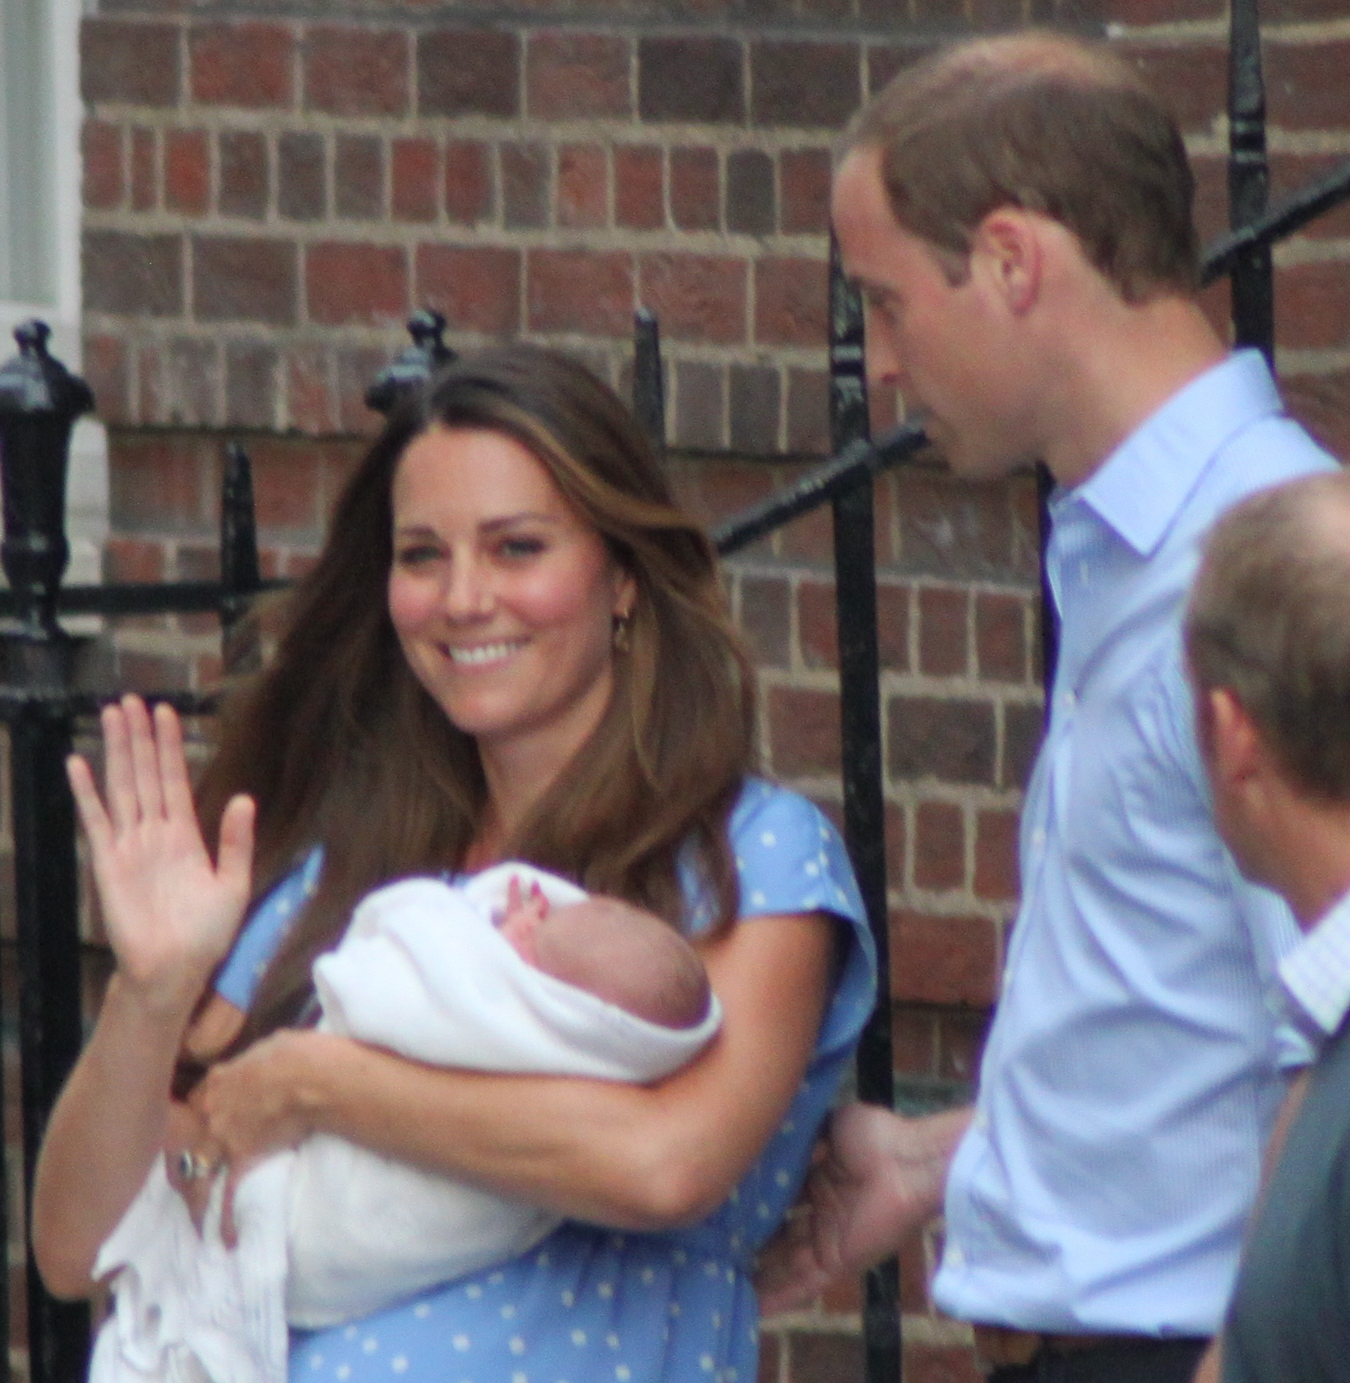 Duchess of Cambridge is not pregnant yet 16.09.2011 5